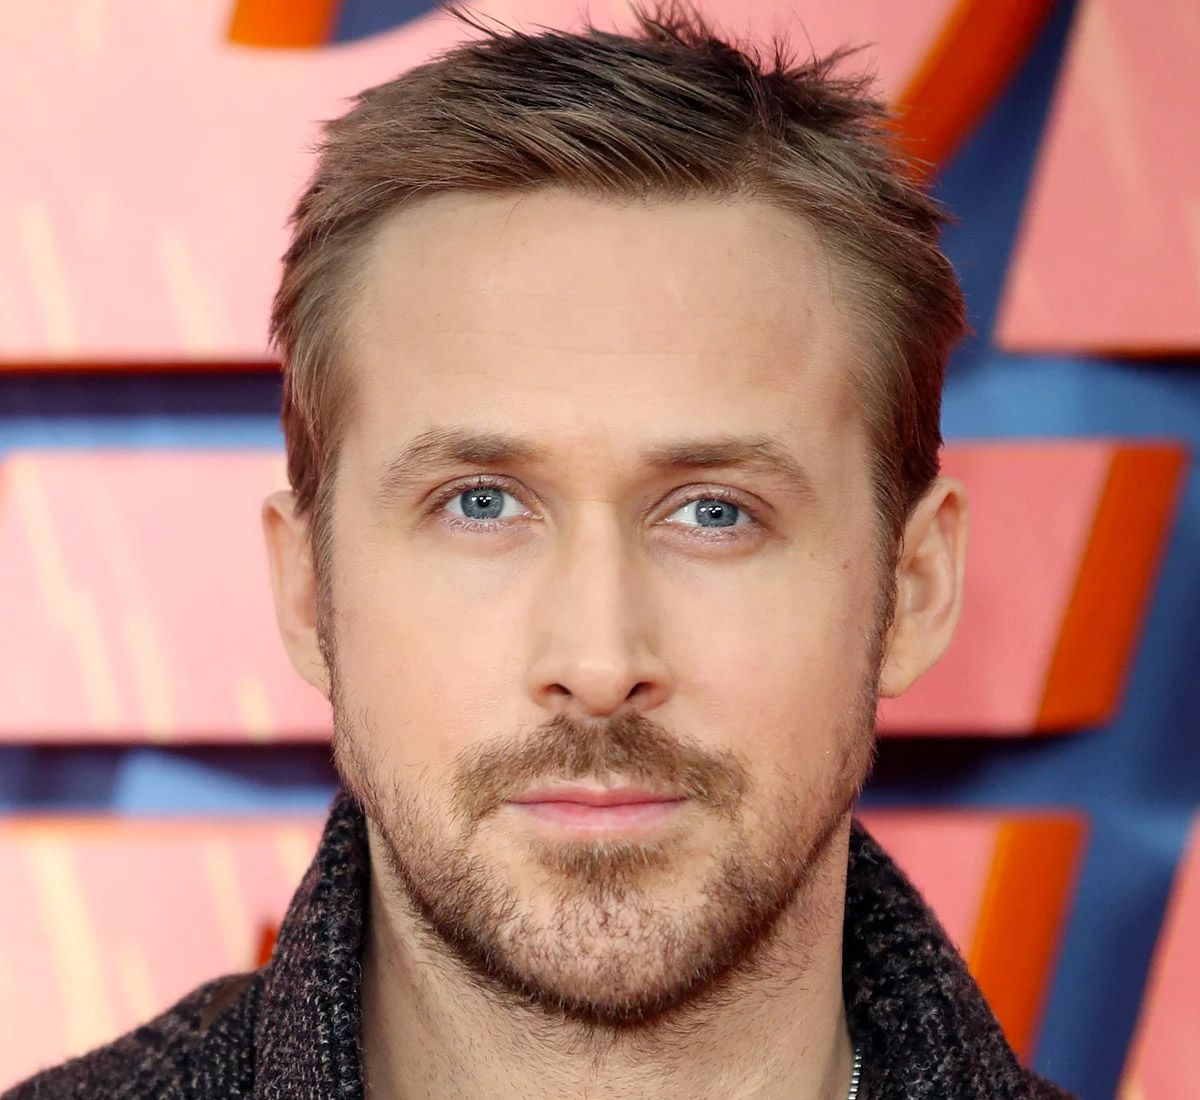 The Ryan Gosling Blade Runner 2049 Haircut Ryan Gosling Blade Runner Ryan Gosling Haircut Mens Haircuts Short